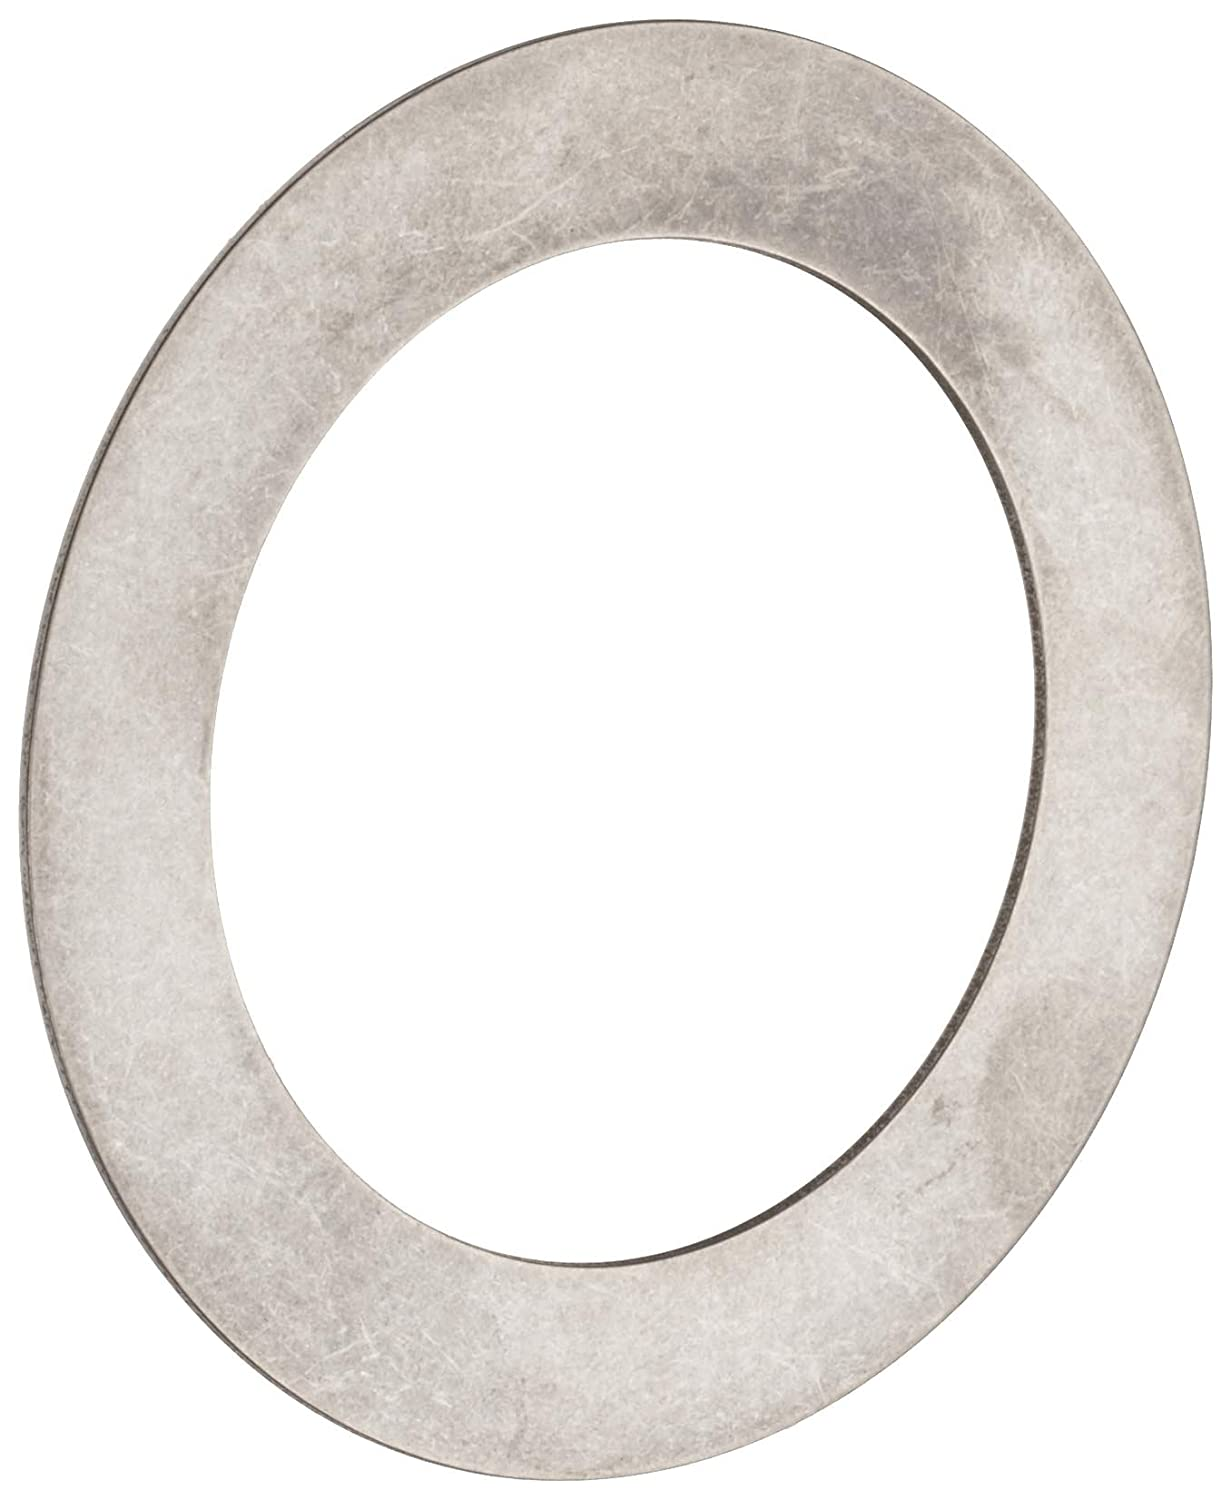 AS0821-INA, Bearings, Axial thrust washers